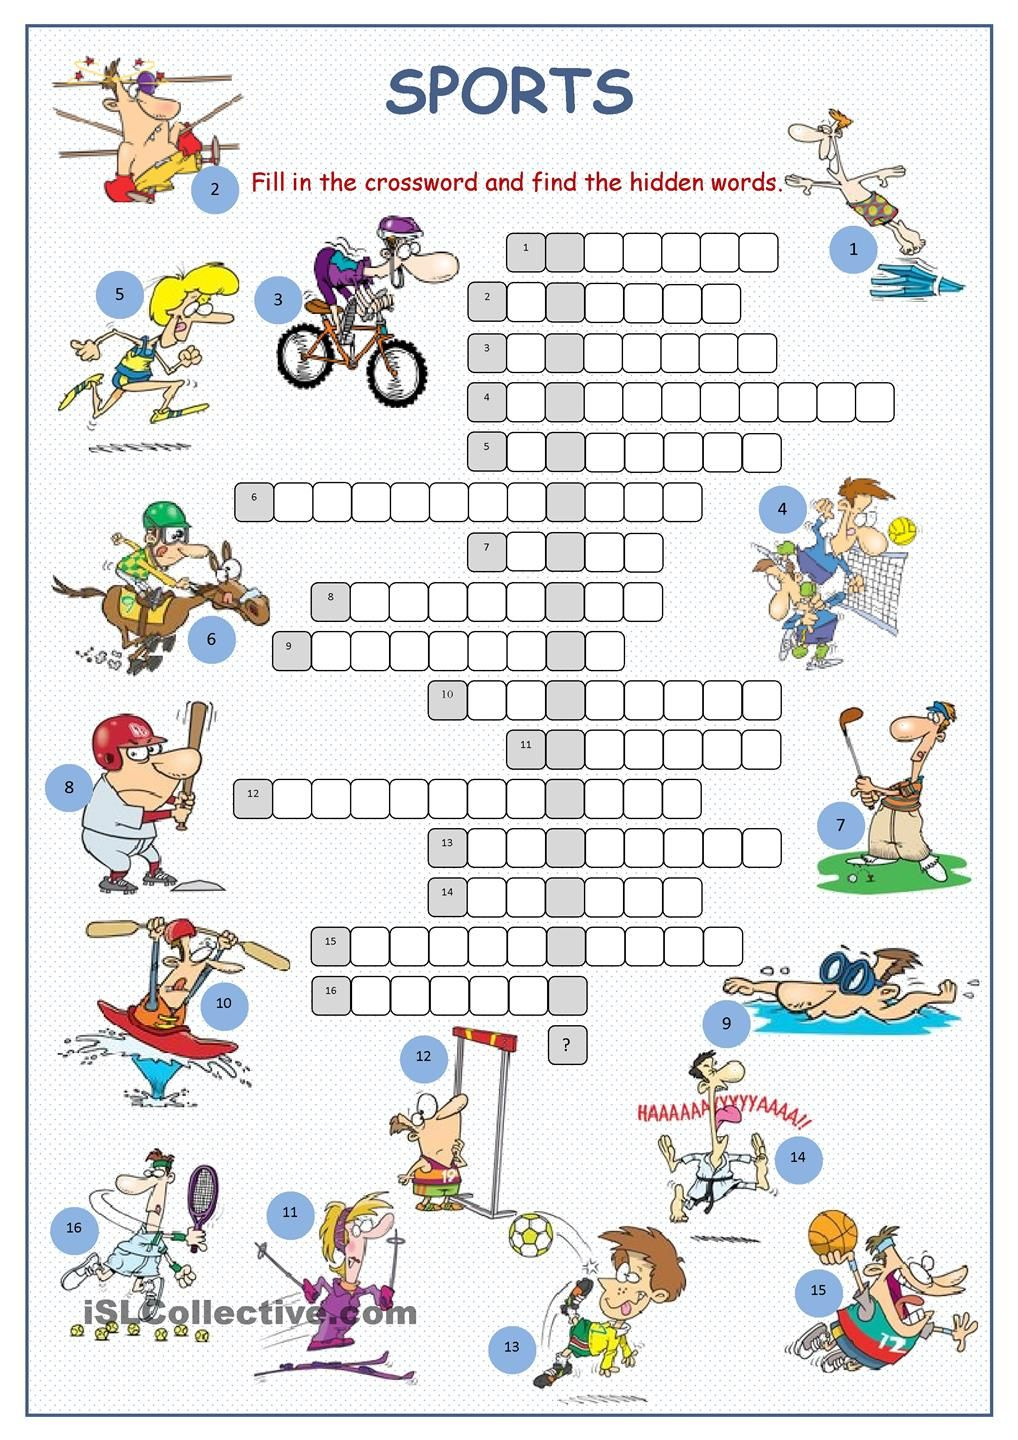 Sports Crossword Puzzle | English | Sports Crossword, Sport English - Sports Crossword Puzzles Printable